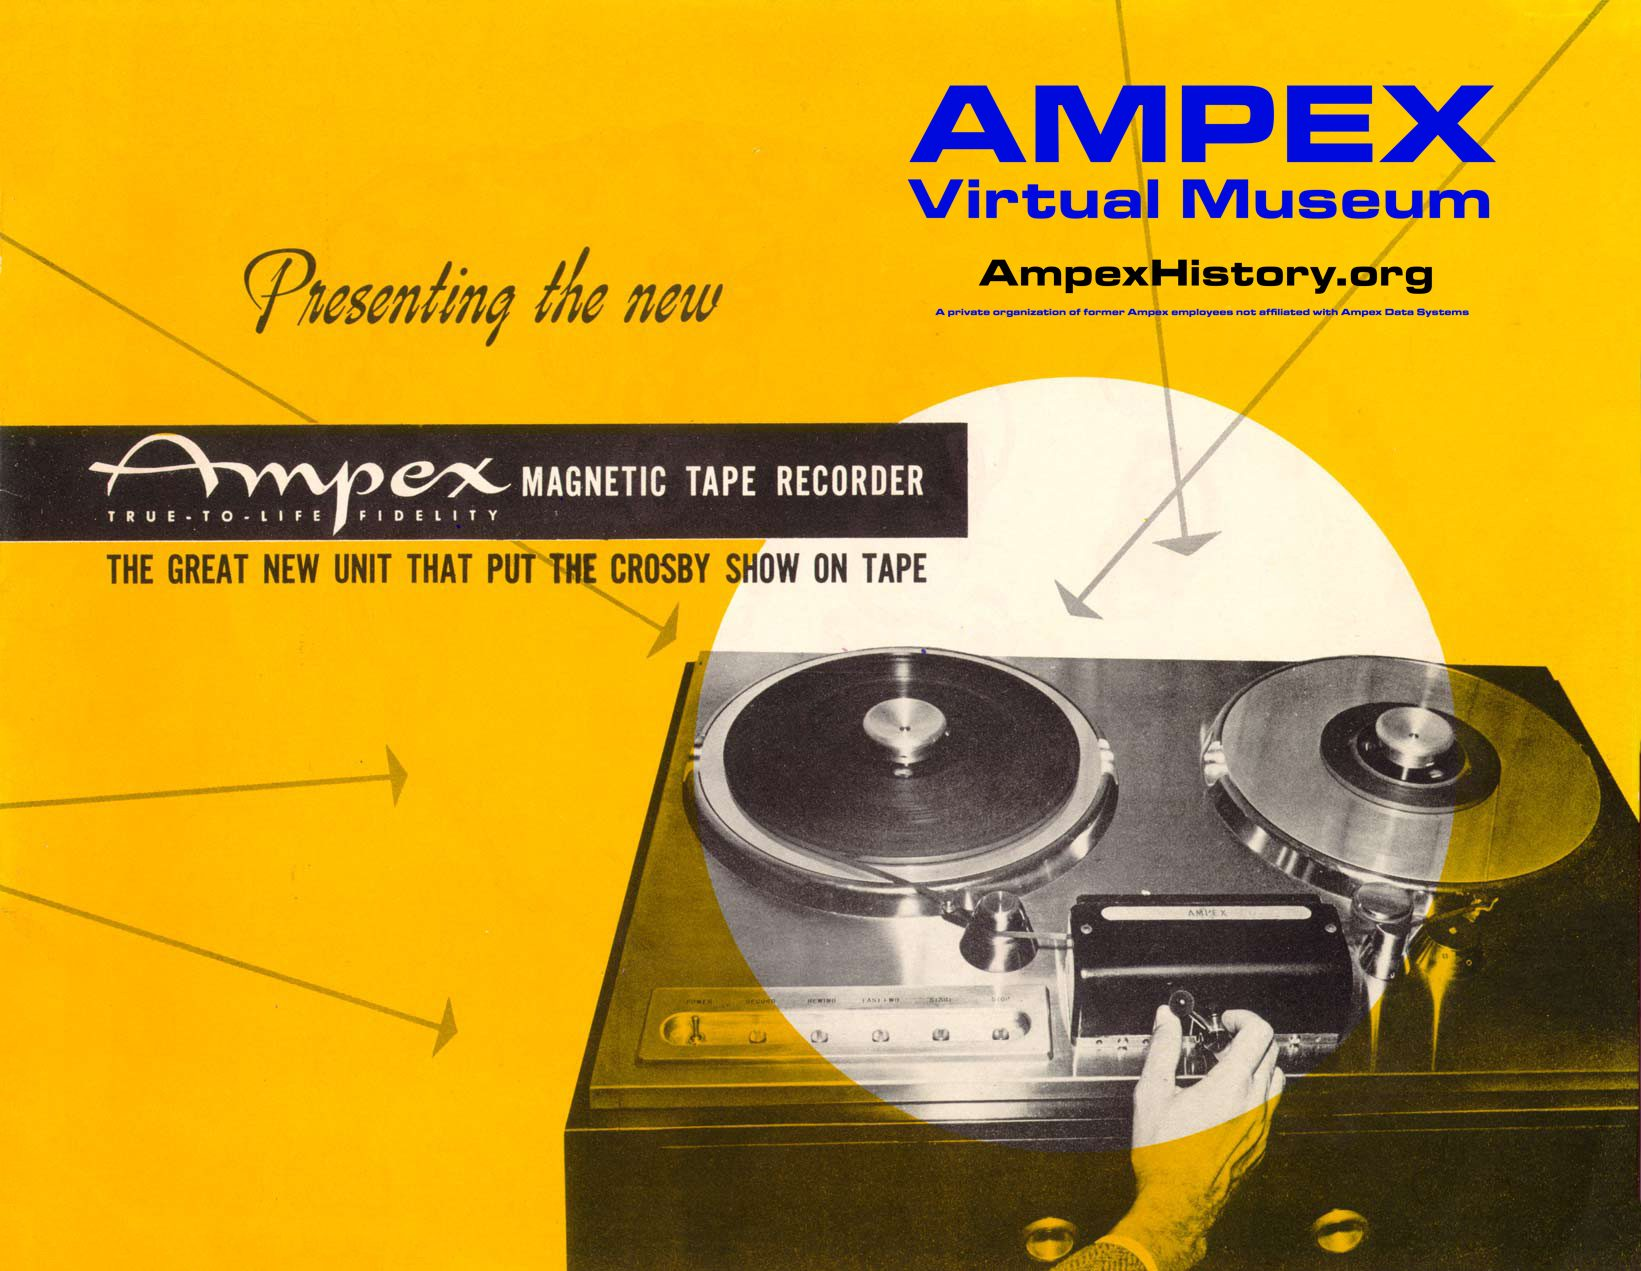 AmpexHistory.org